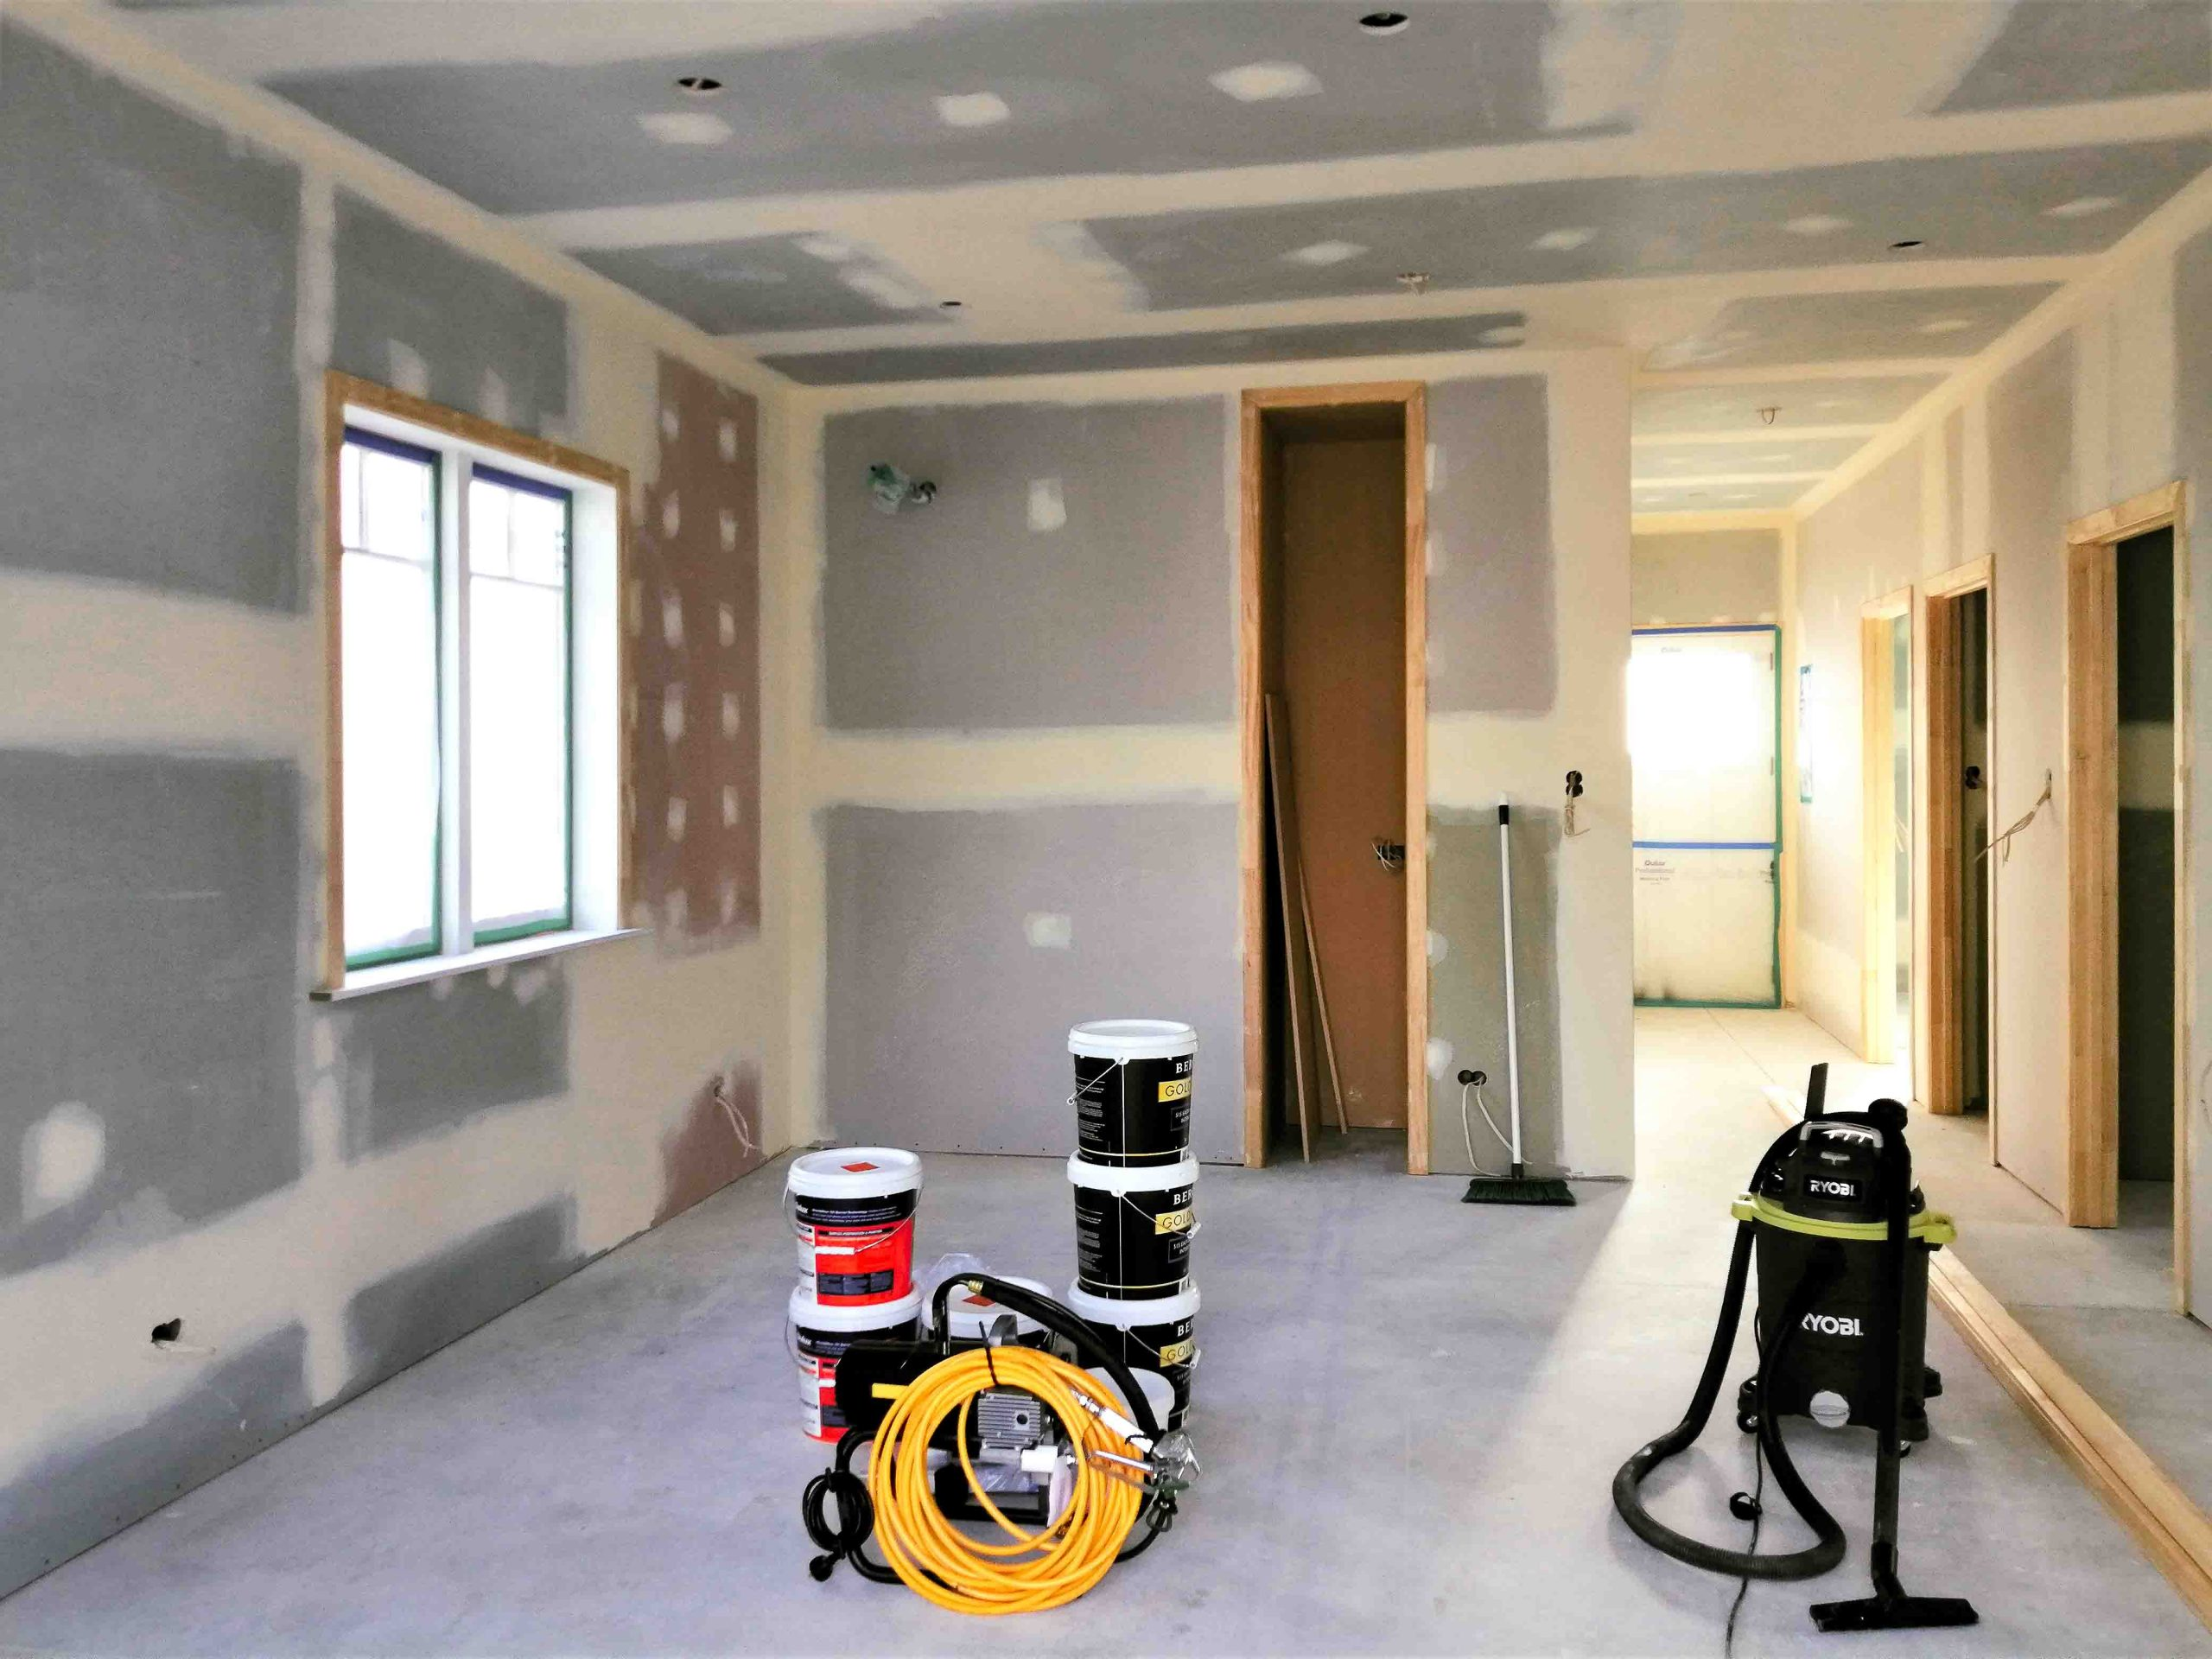 Interior painting of the living room